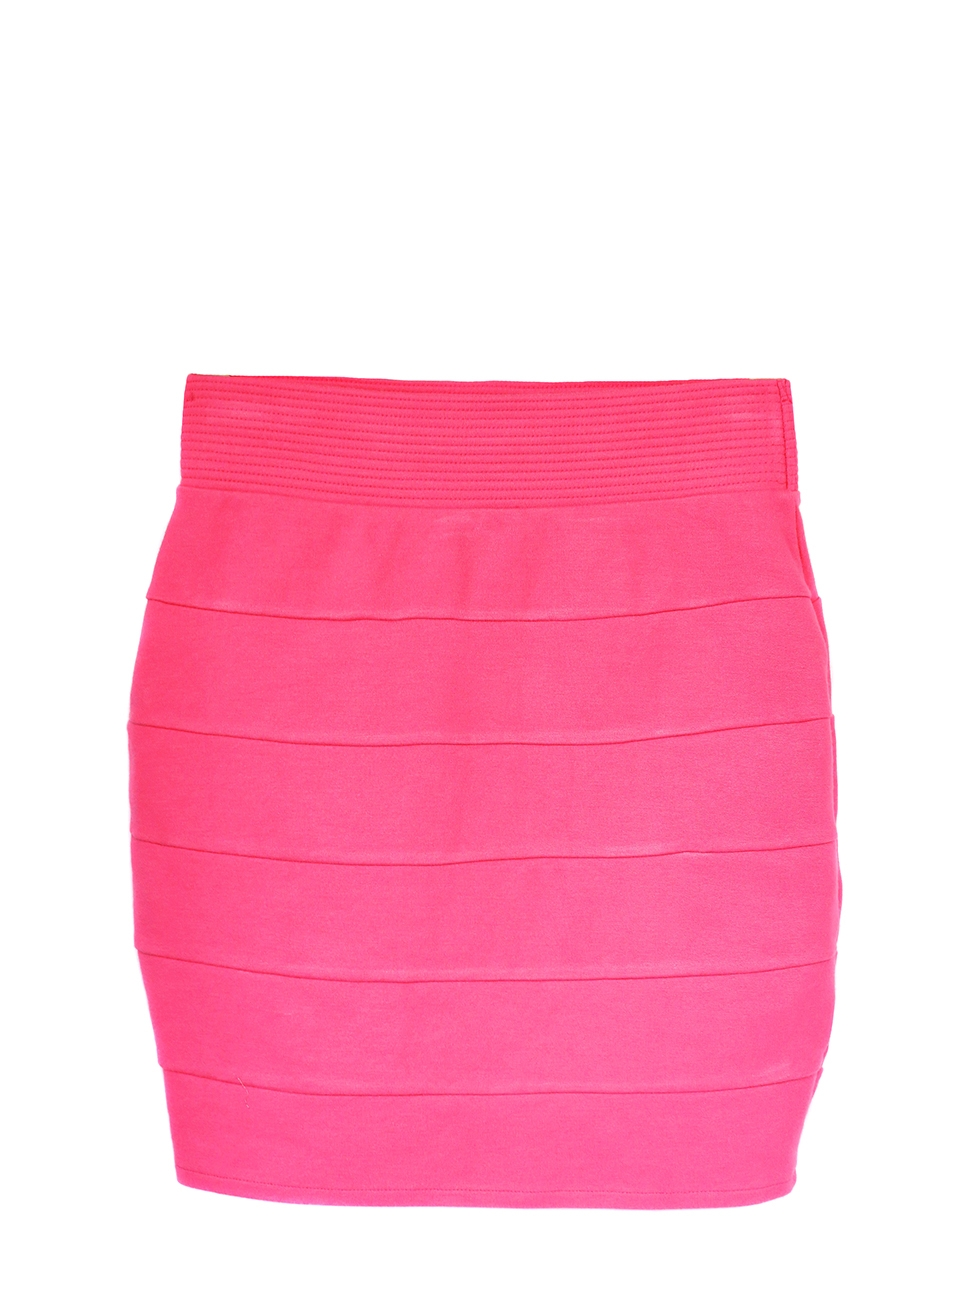 Neon pink stretch cotton jersey skirt size 36